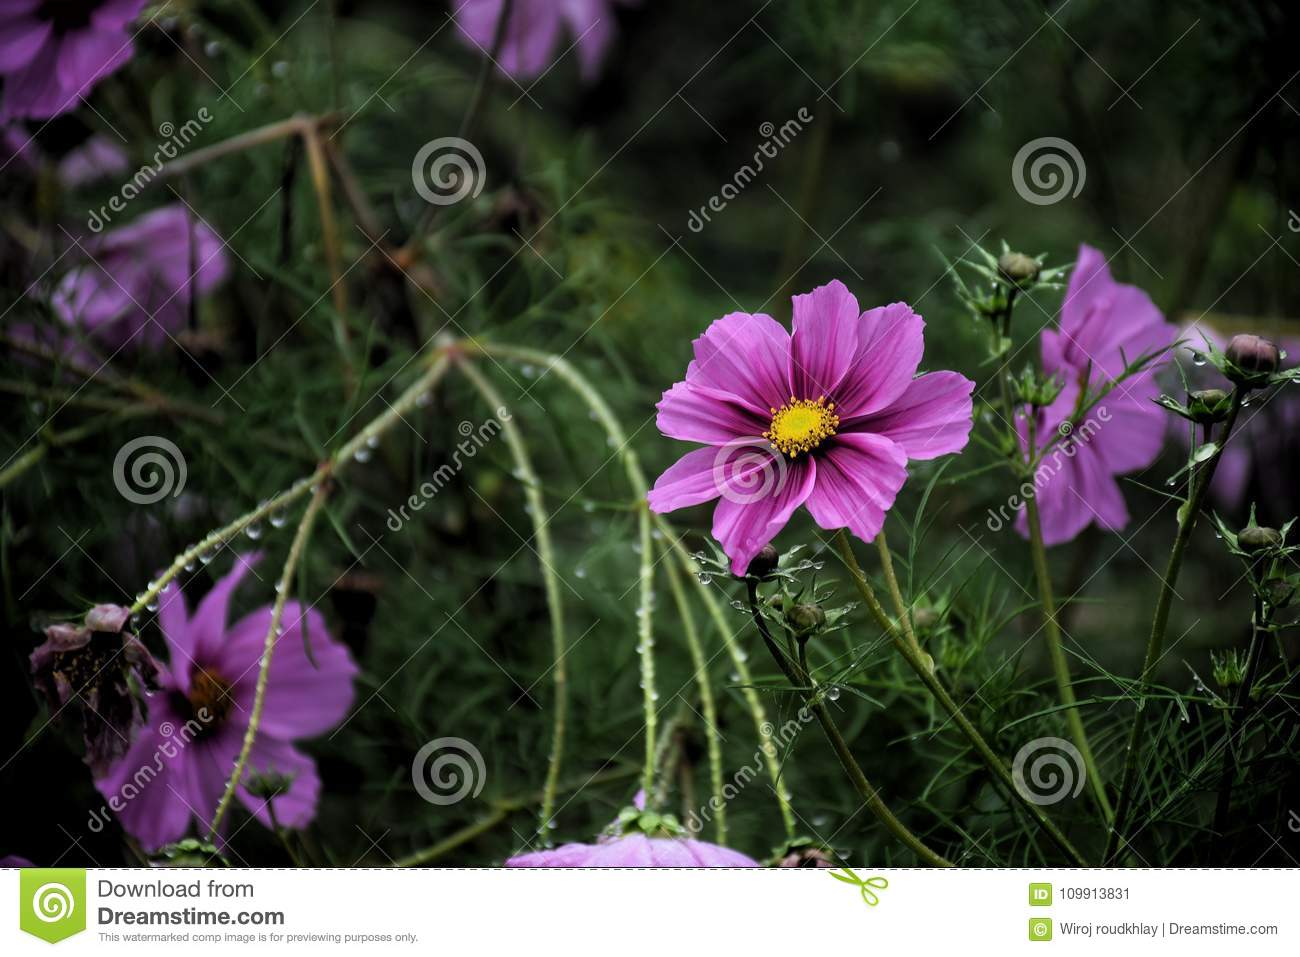 Pink cosmos flower in the garden and black background stock image download pink cosmos flower in the garden and black background stock image image of environment izmirmasajfo